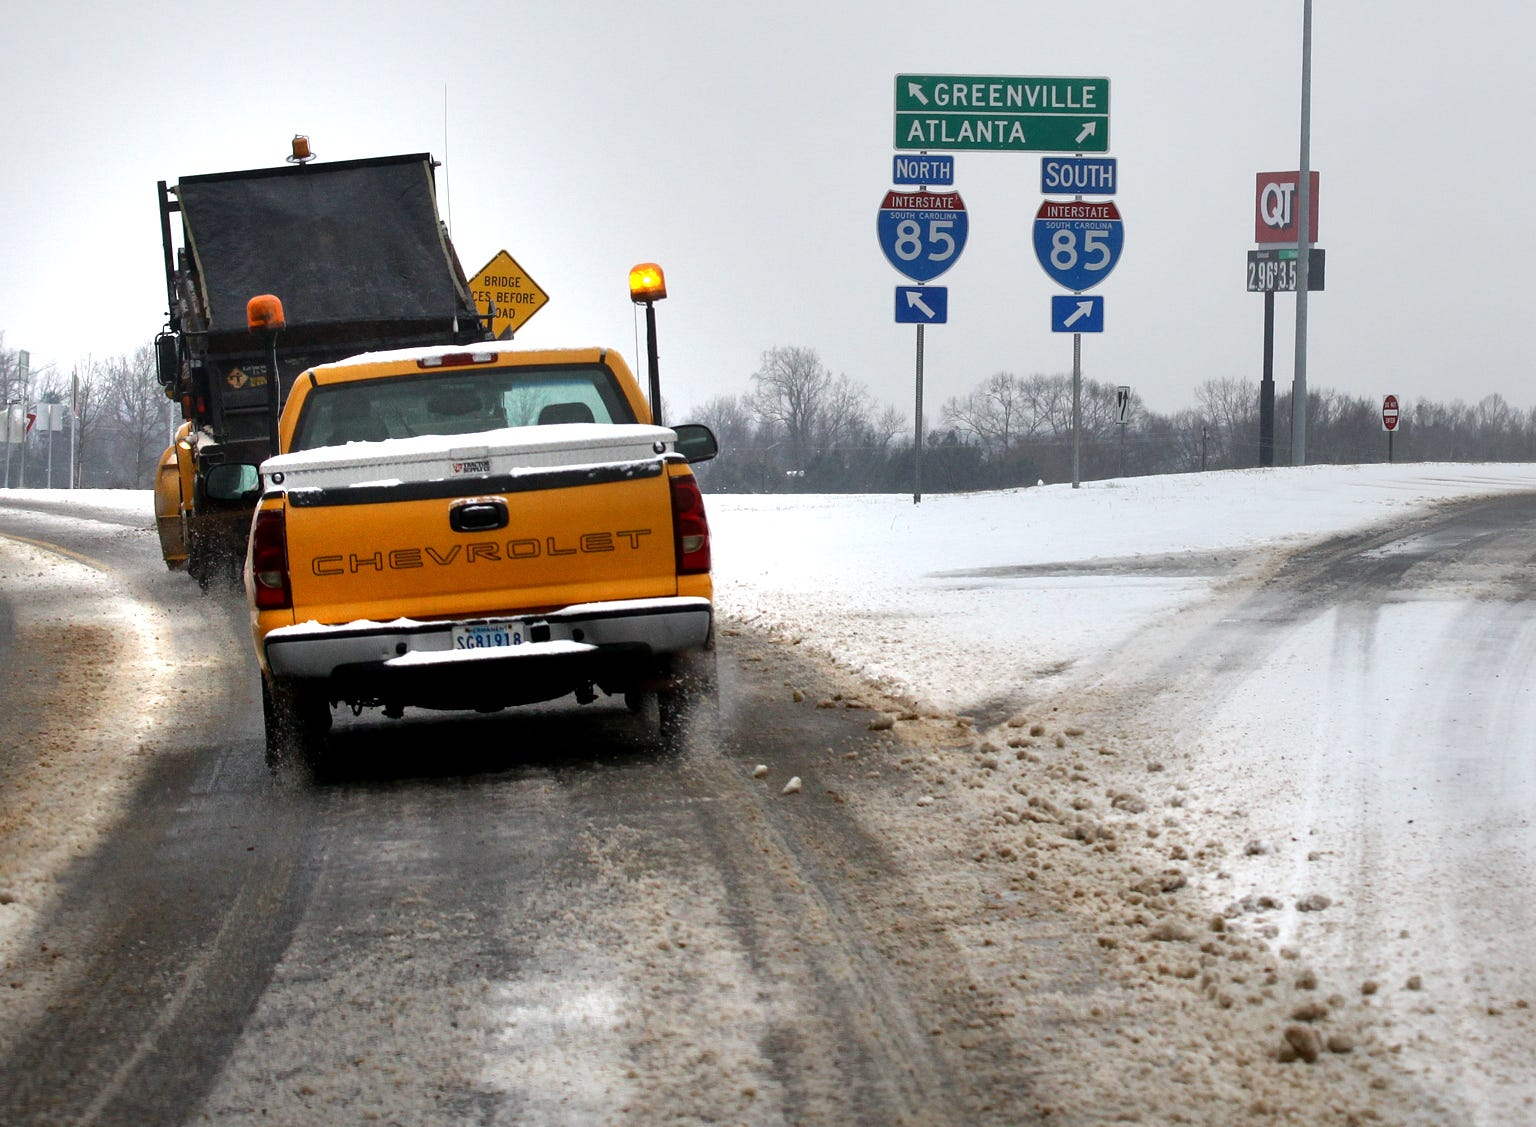 A sand truck from the South Carolina Department of Transportation center drives along S.C. 178 in Anderson, passing an I-85 exit ramp during the first snow of 2014.